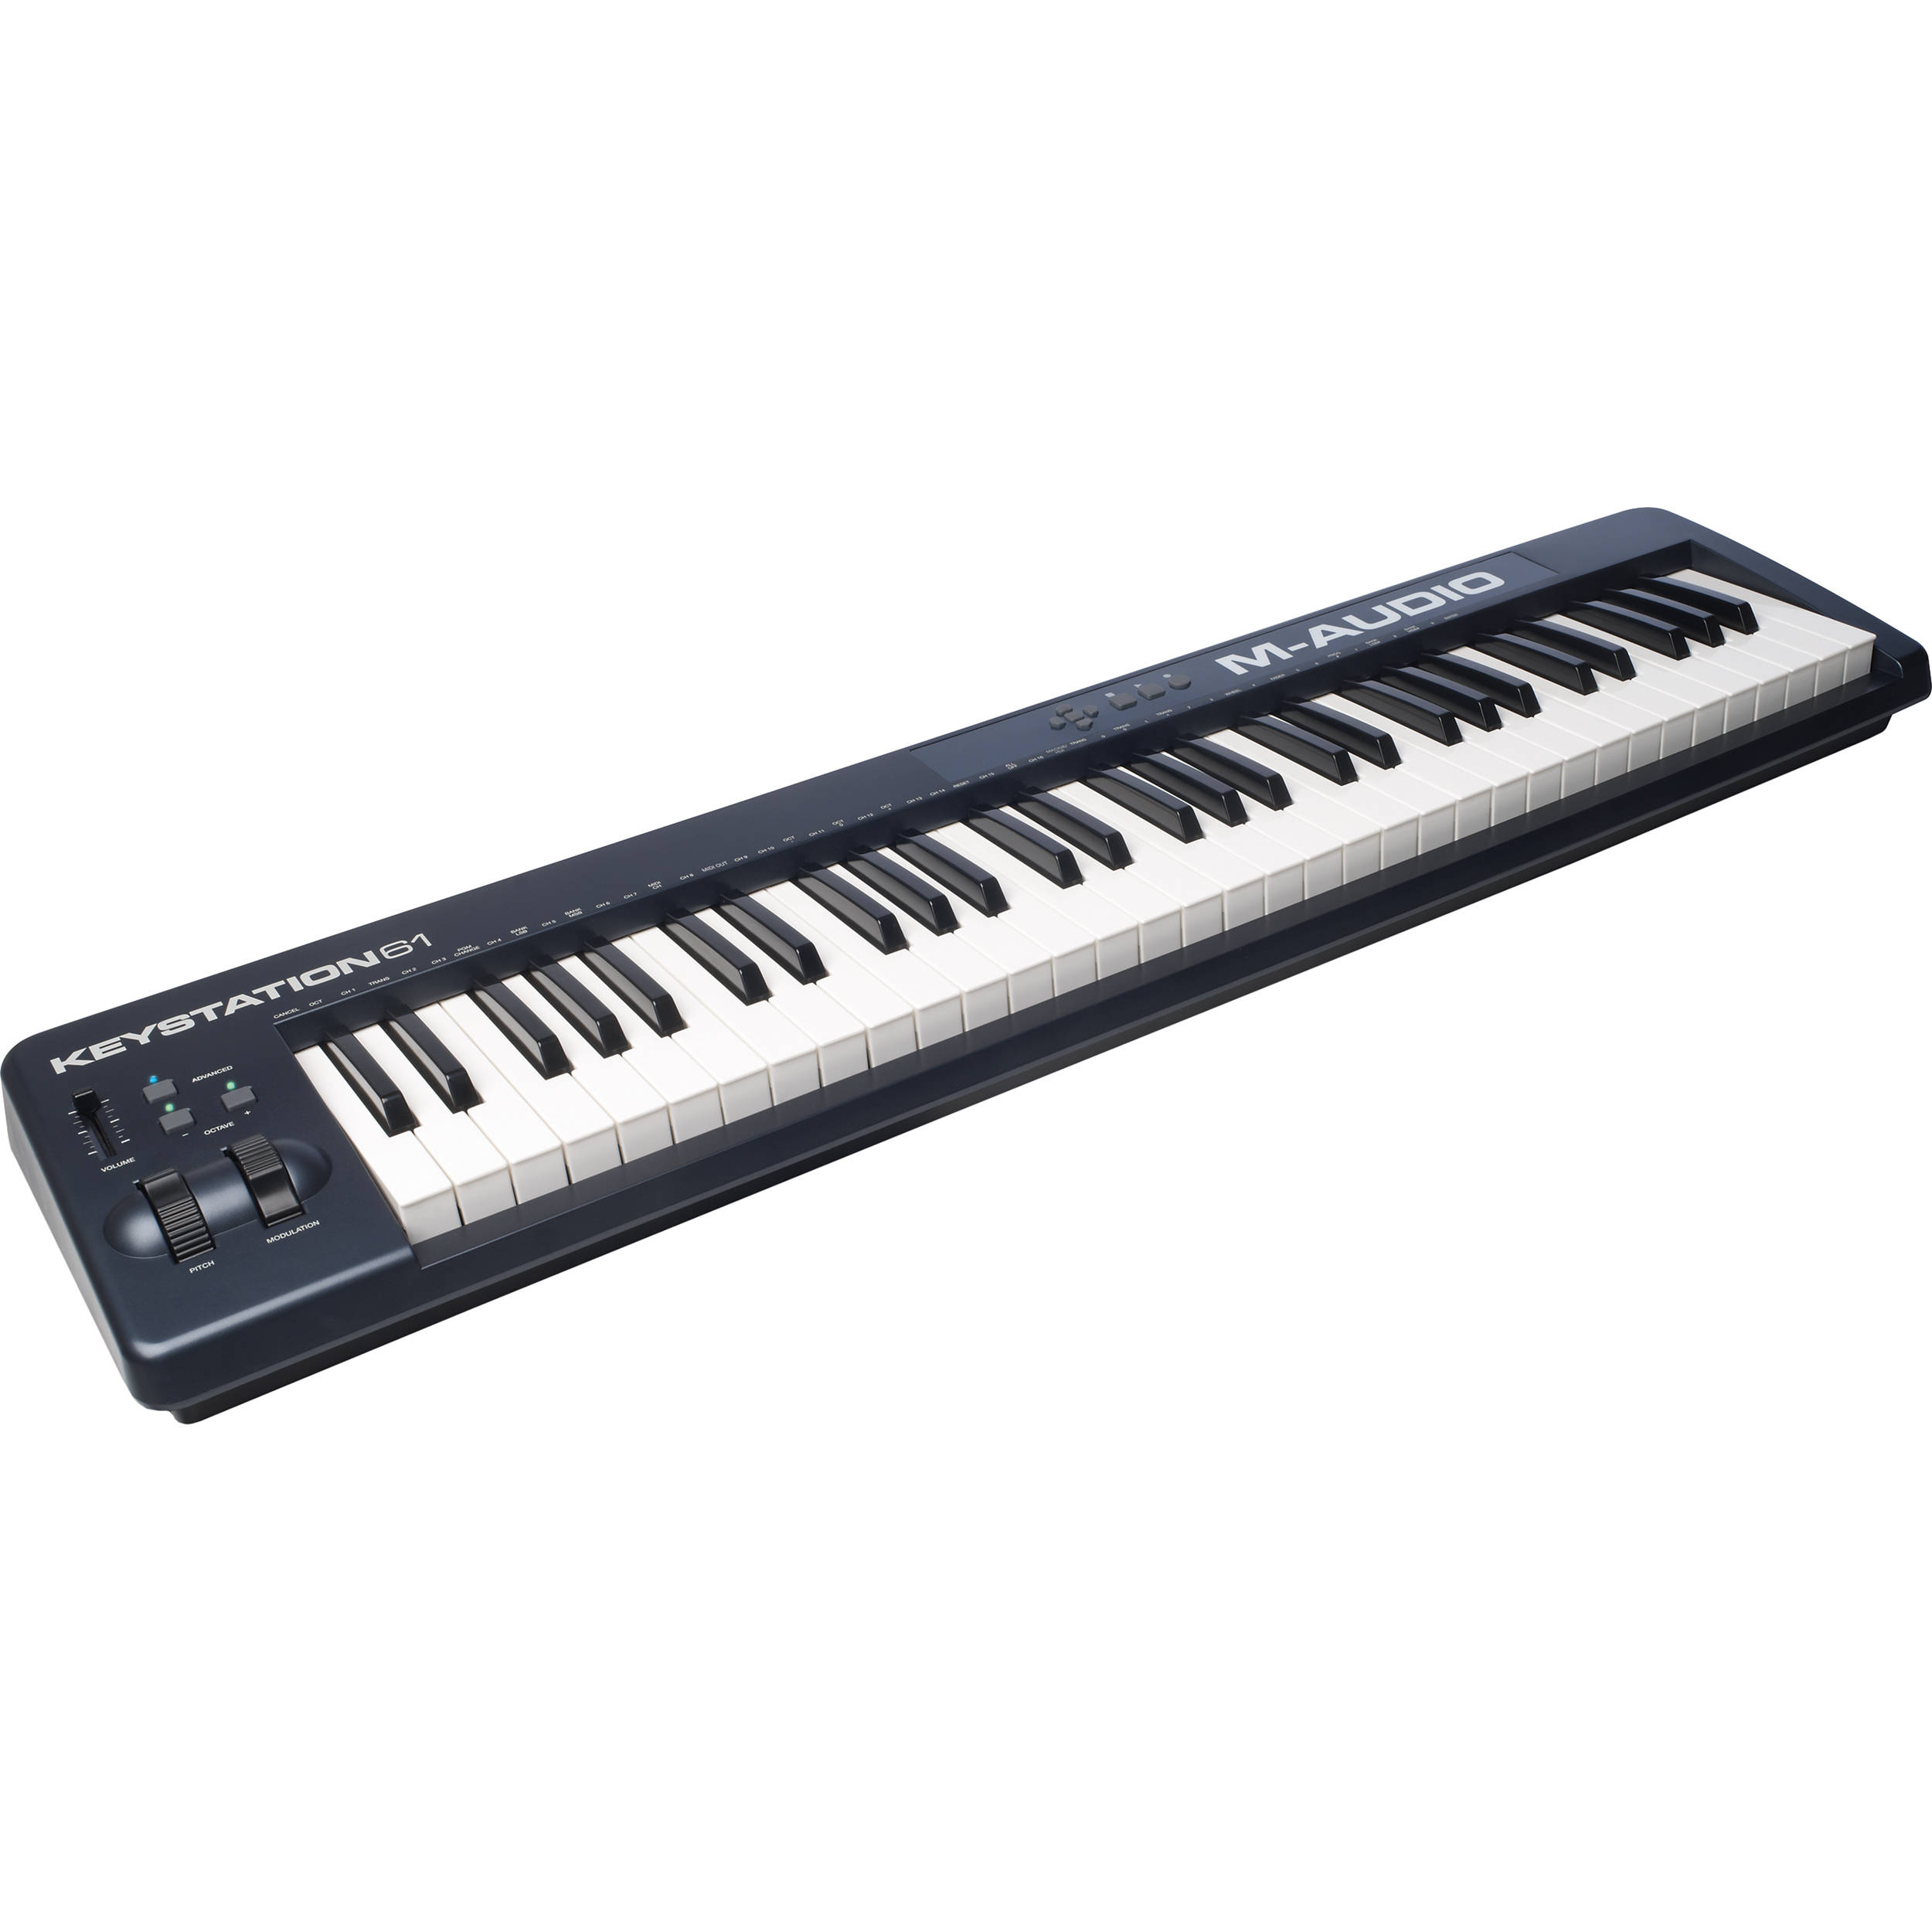 m audio keystation 61 ii midi controller keystation61ii b h. Black Bedroom Furniture Sets. Home Design Ideas